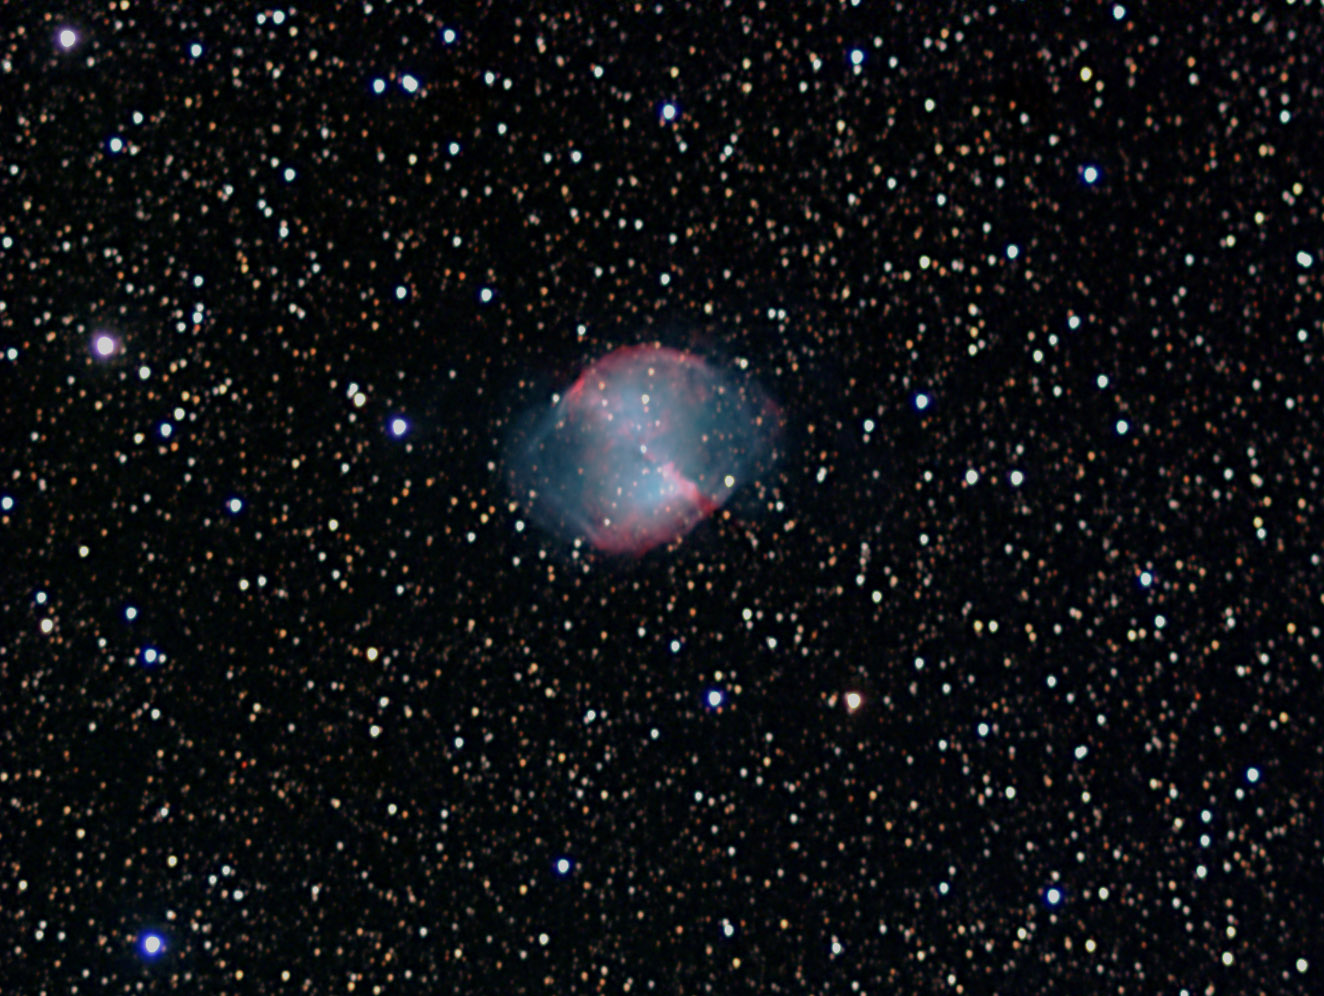 M27 Dumbell nebula   SuperStar LRGB 2013 07   PS croppped, processed